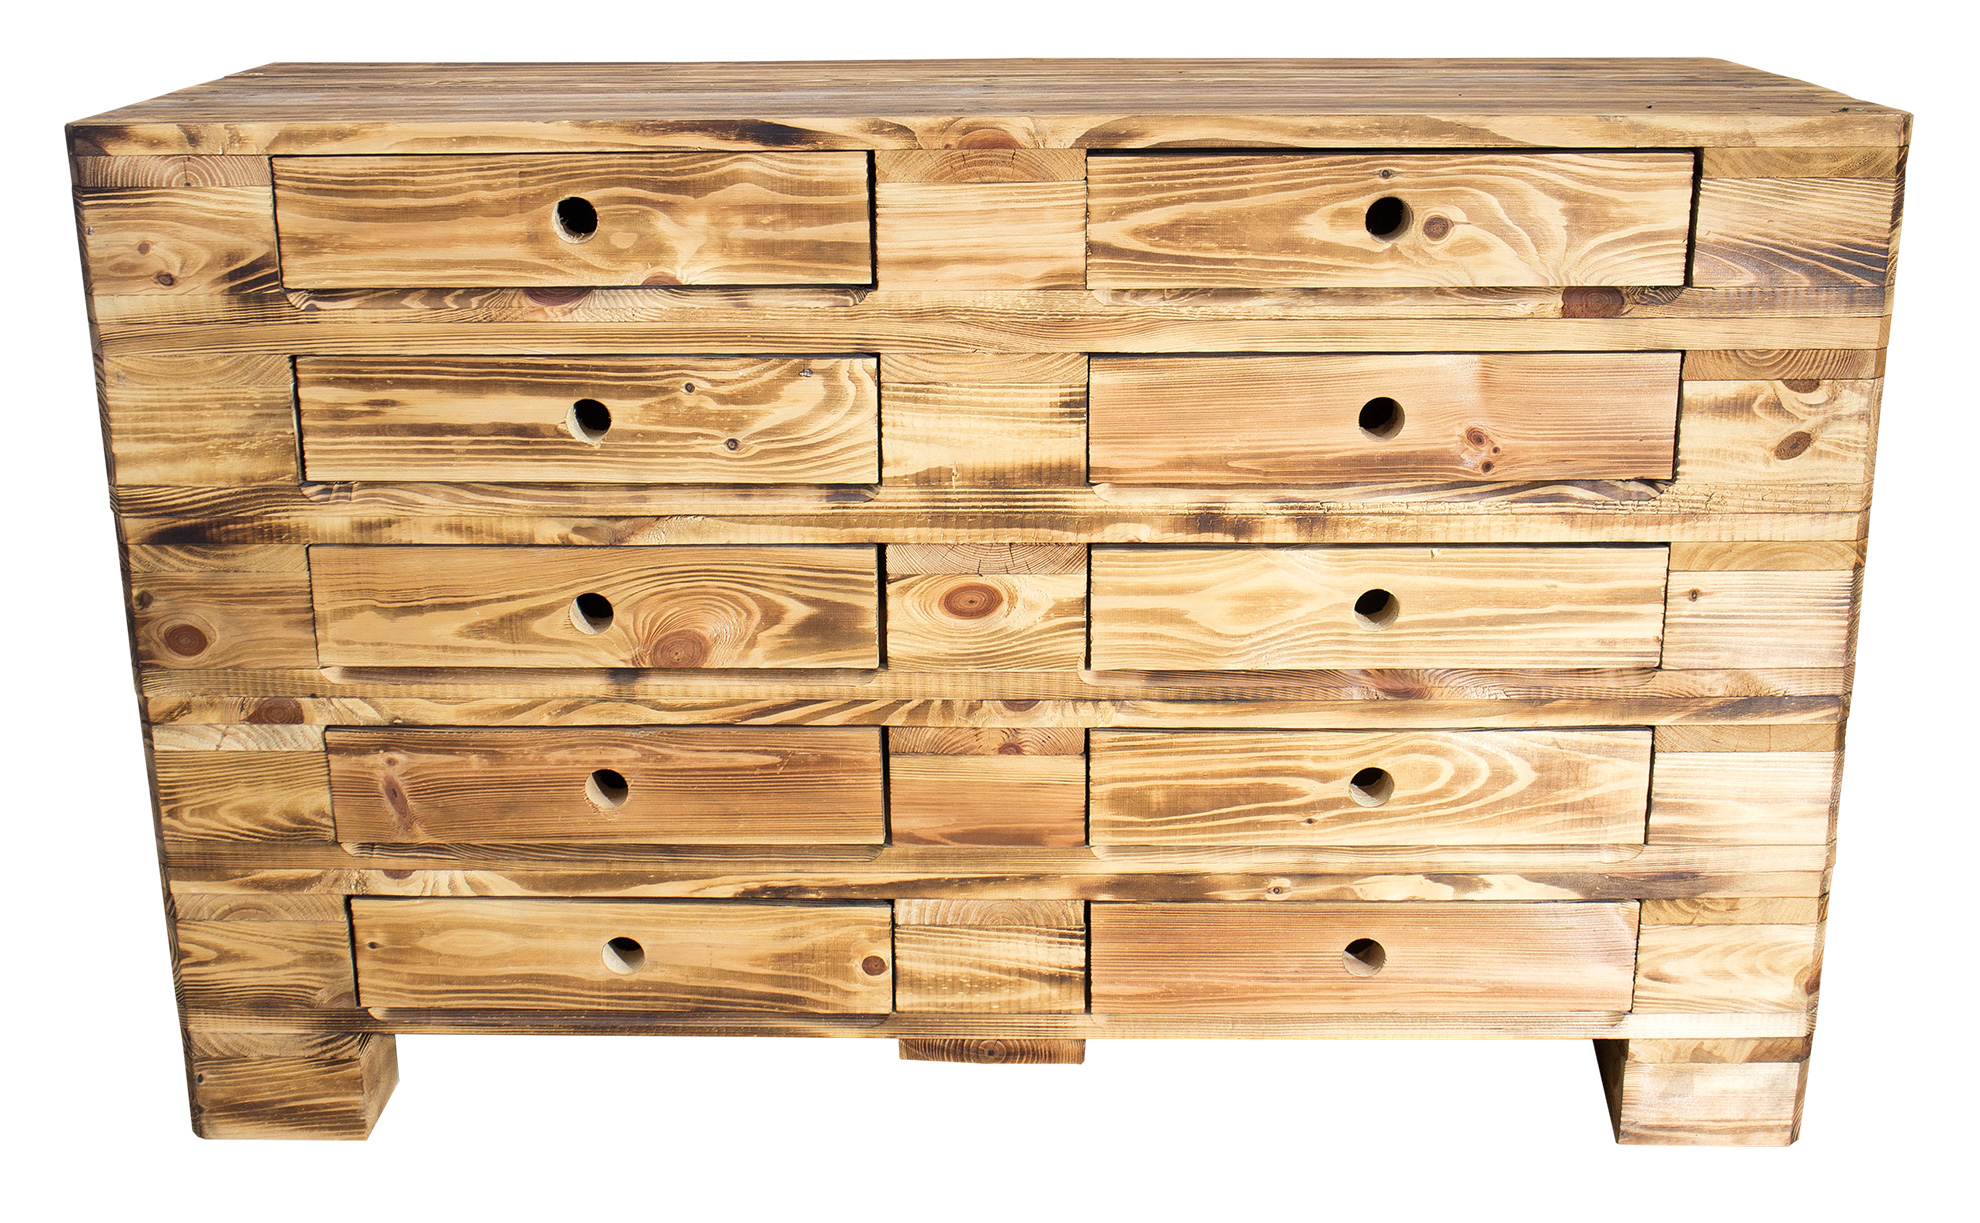 Wunderbar Kommode Industrial Style Beste Wahl Vintage Chest Of Drawers Made Of Pallets